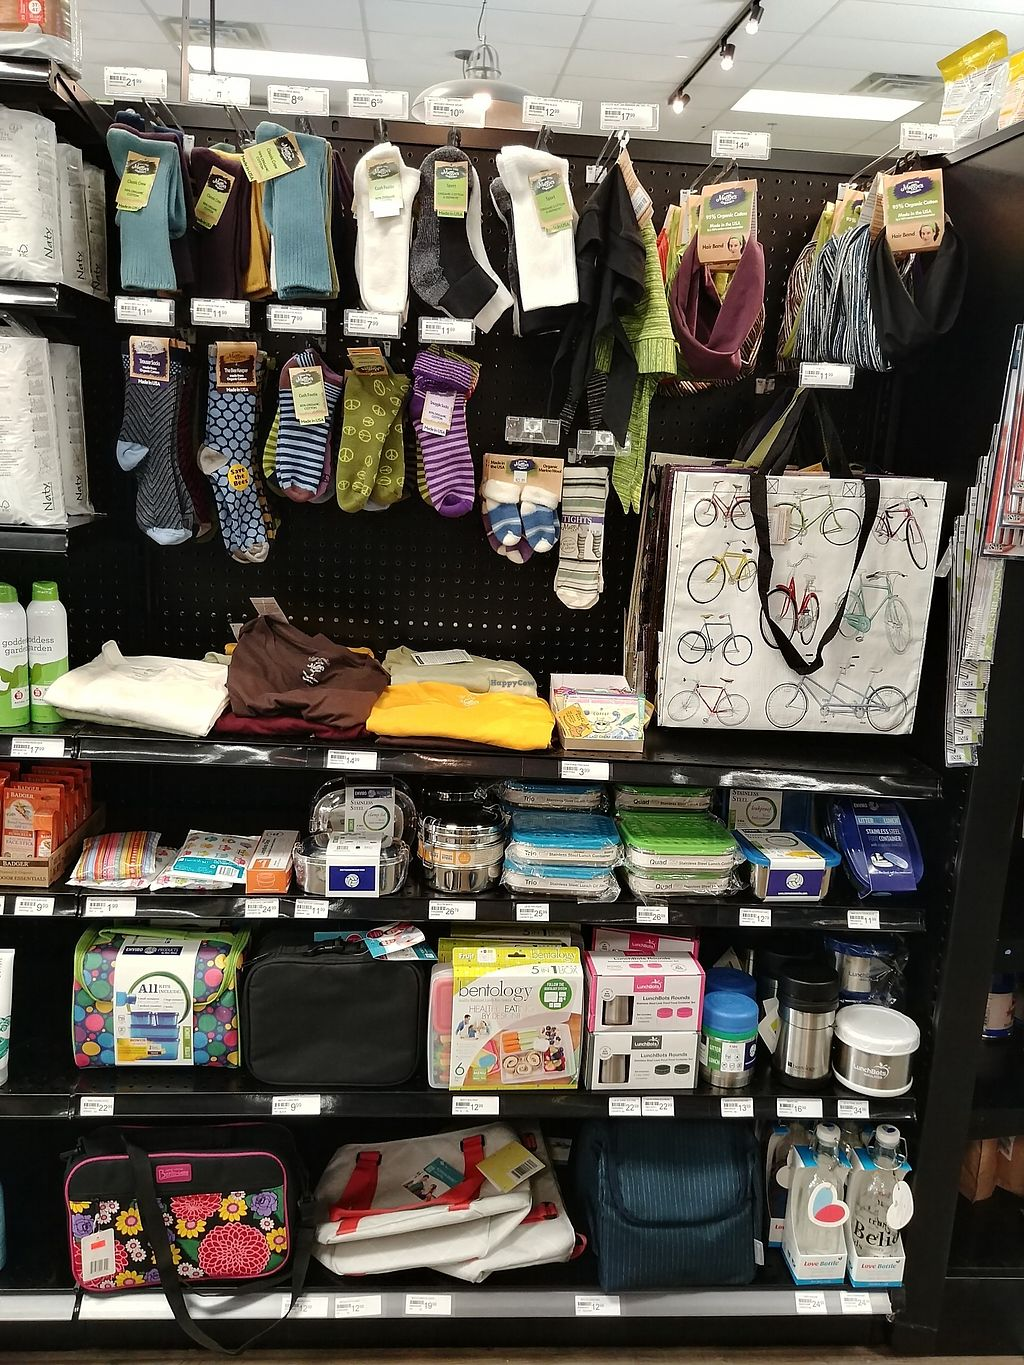 """Photo of Choices Natural Market  by <a href=""""/members/profile/PlantSim"""">PlantSim</a> <br/>They stock sustainable and/plastic-free lunch containers, Blue Q shopping totes, Maggie's Organic clothing, and glass drinking bottles <br/> August 22, 2017  - <a href='/contact/abuse/image/9689/296006'>Report</a>"""